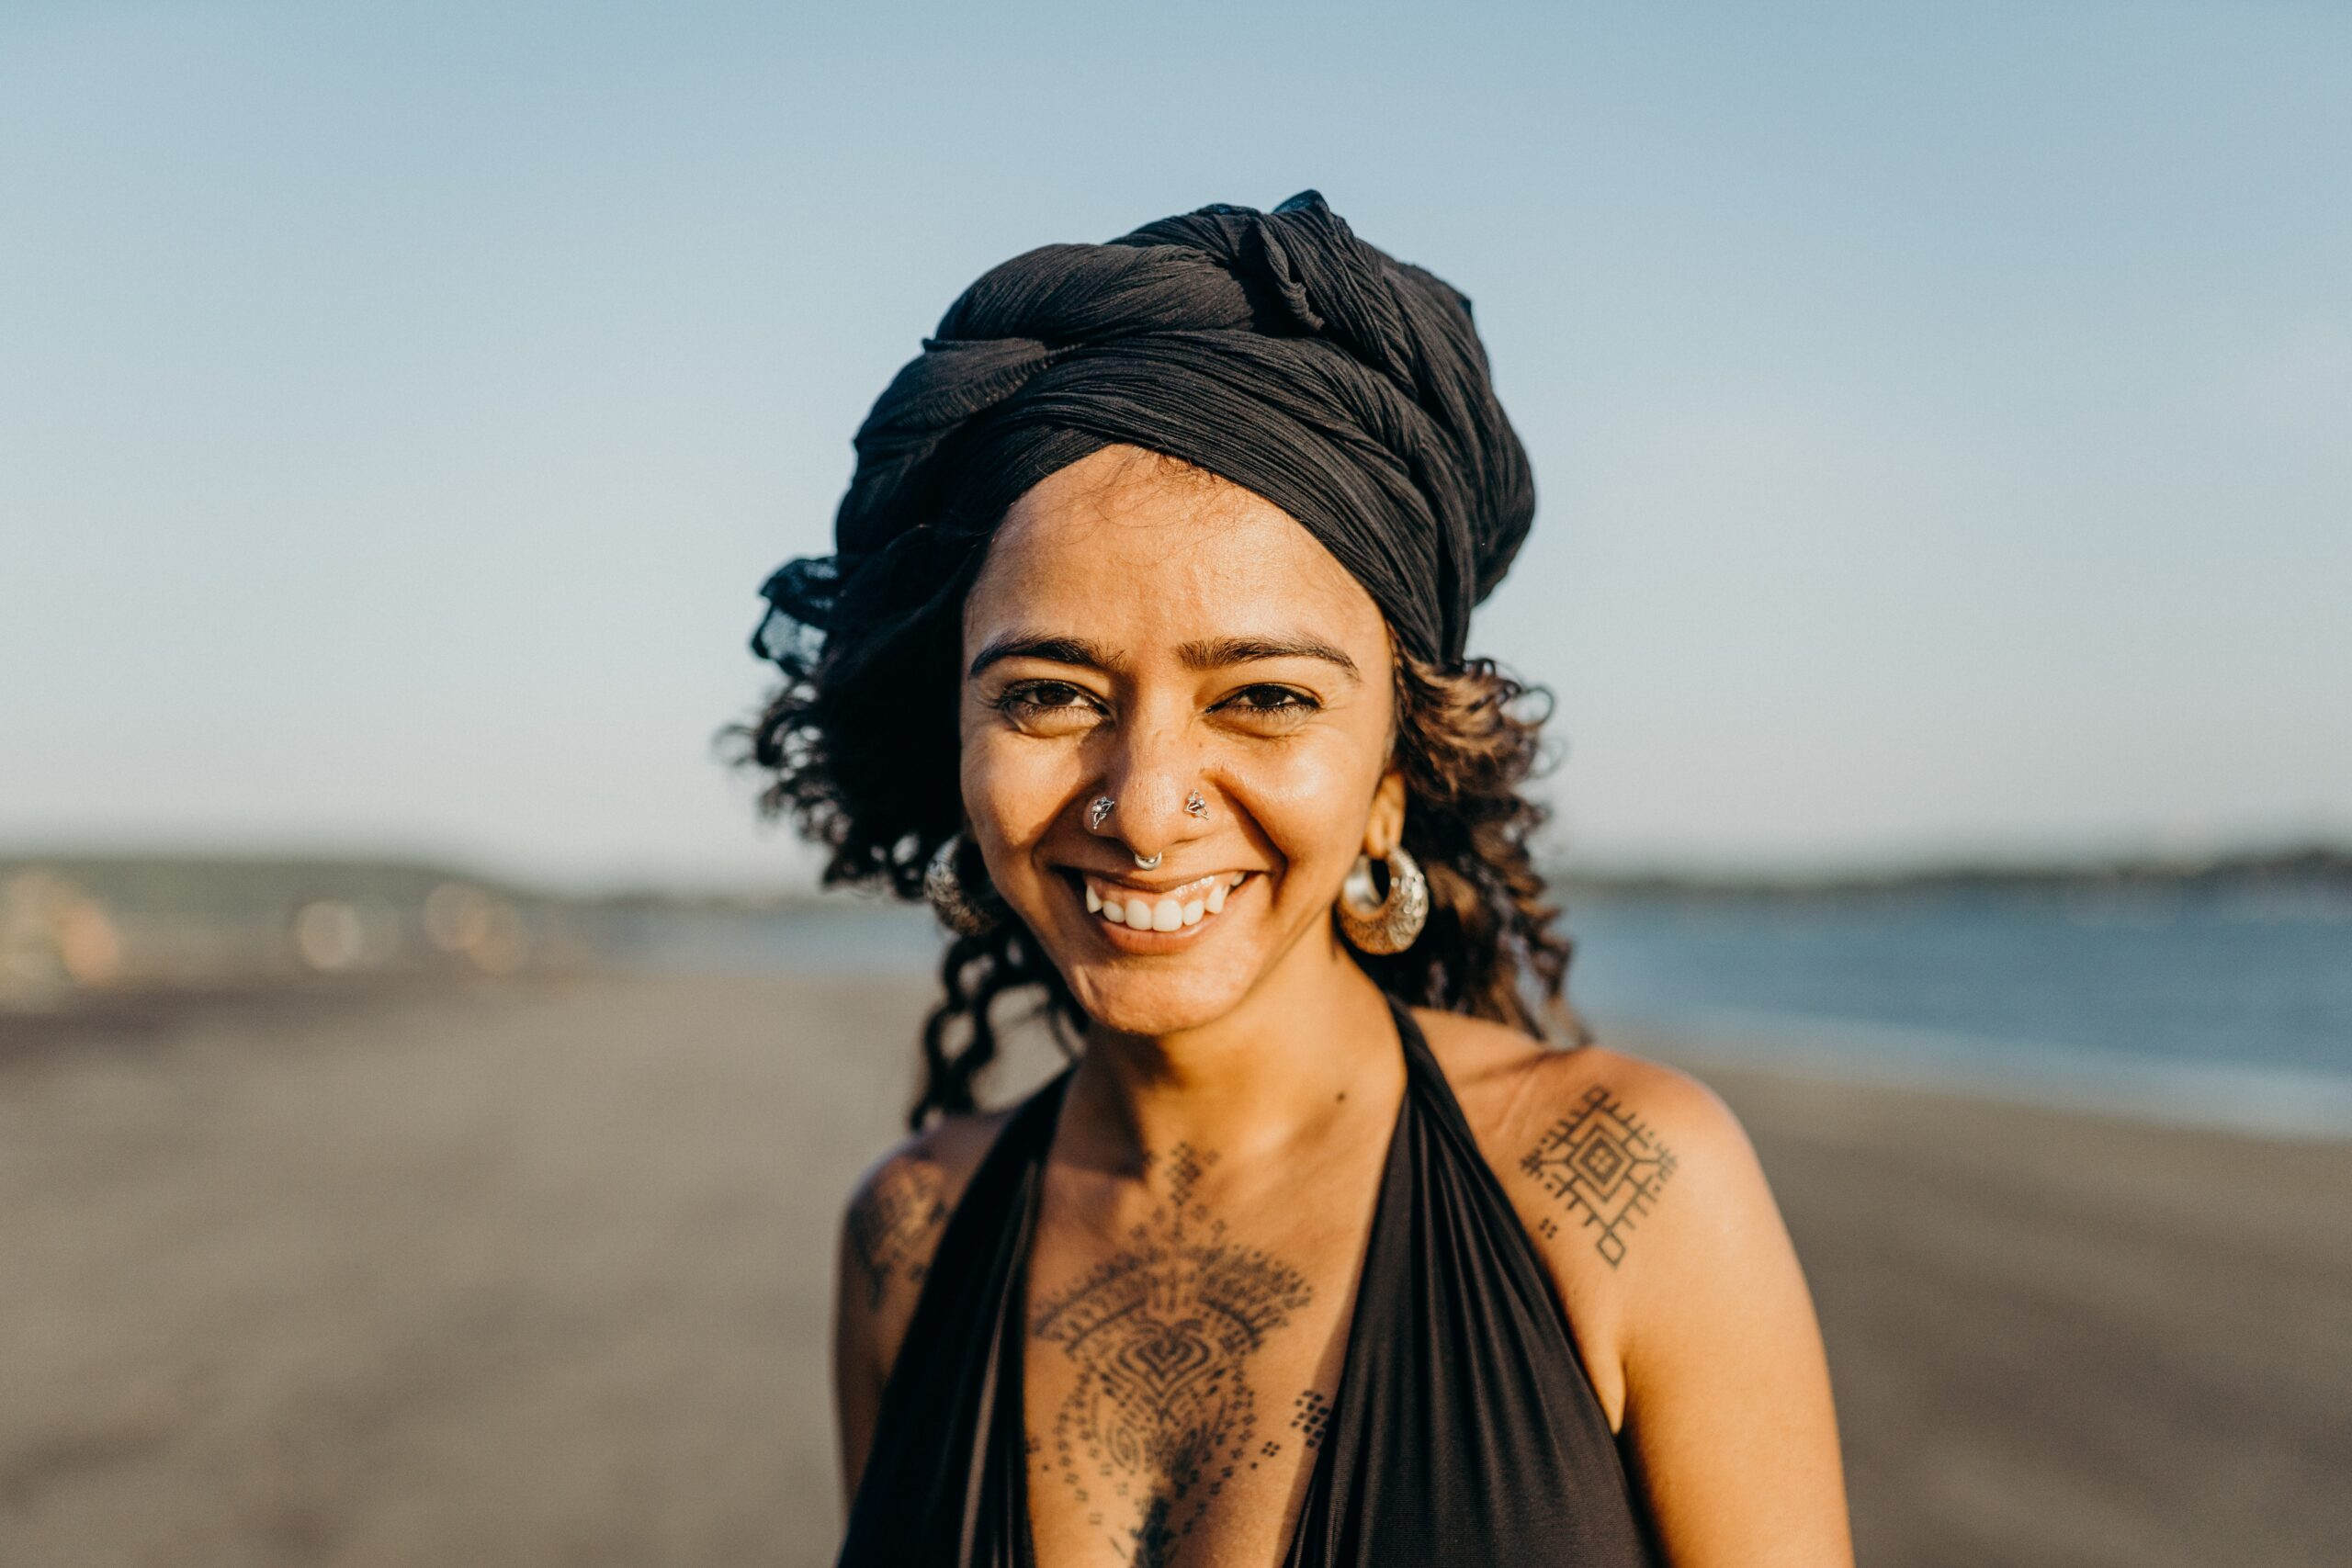 Image shows smiling woman on the beach